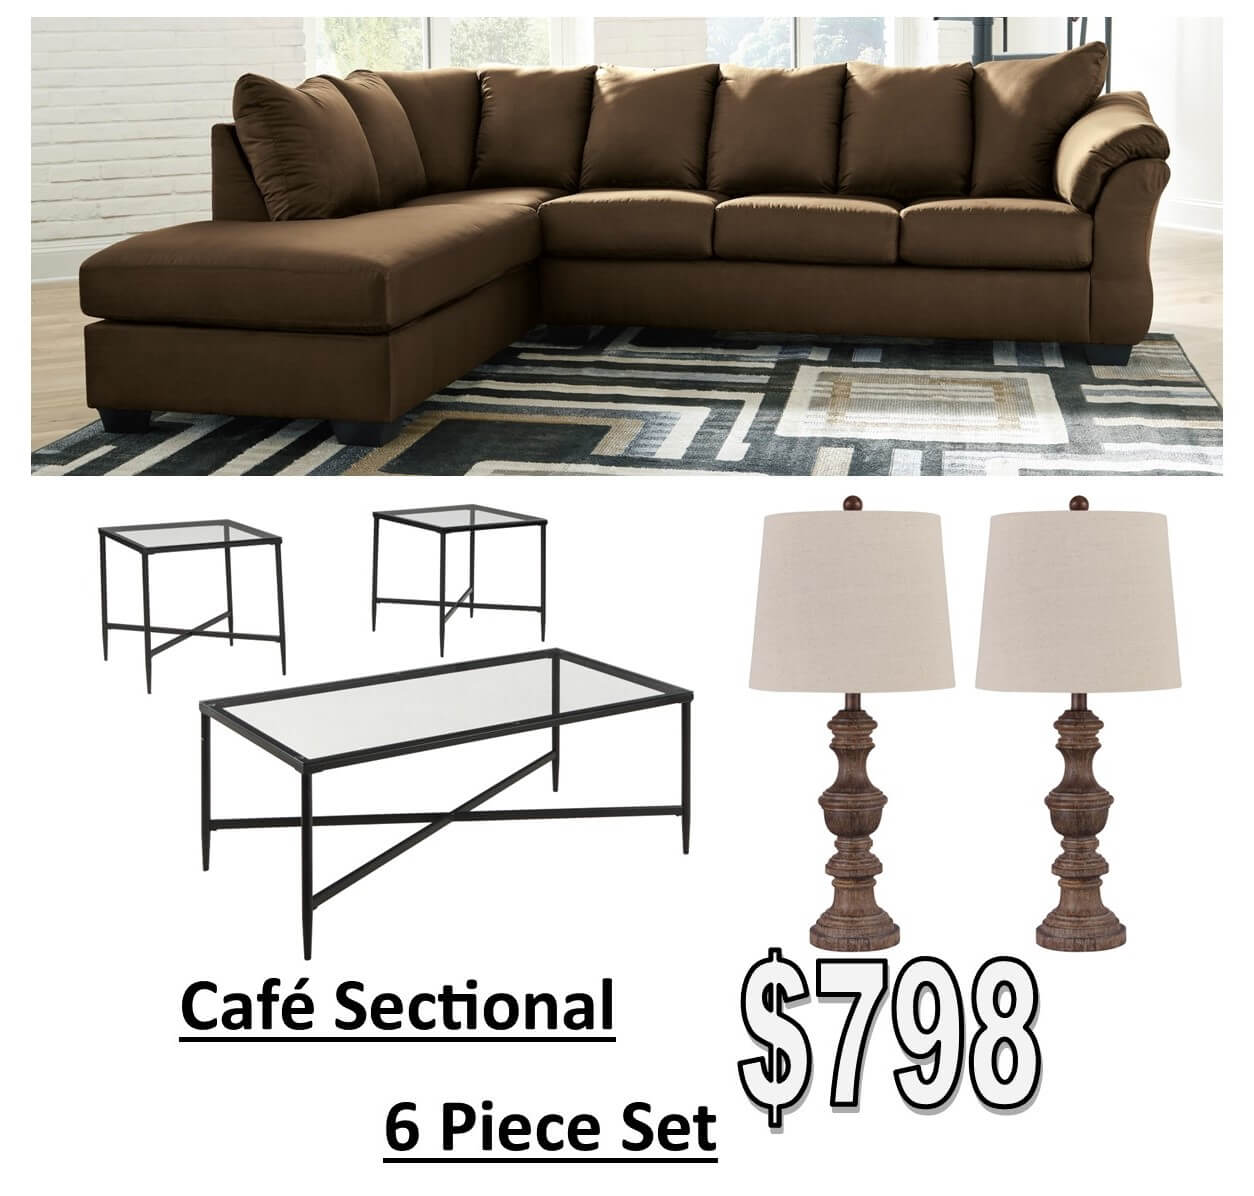 All American Furniture Deltona: Cafè Sectional Living Room Package